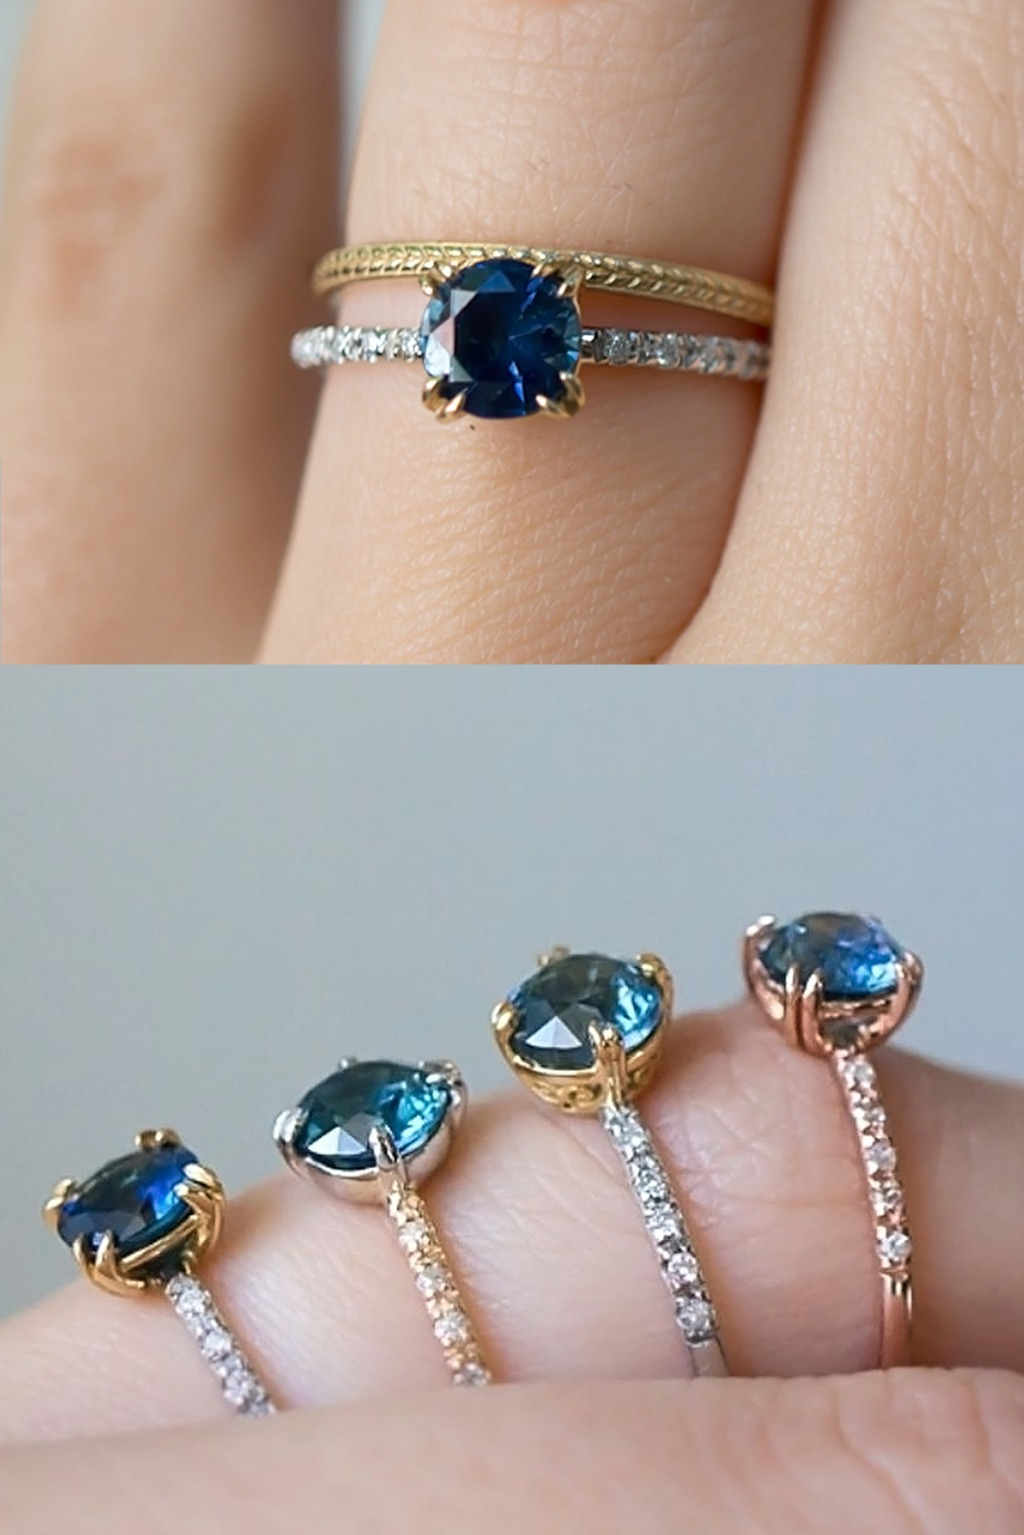 https://skind.nyc/collections/our-timeless-favorites-made-to-order-just-for-you/products/two-tone-blue-montana-sapphire-dunne-ring